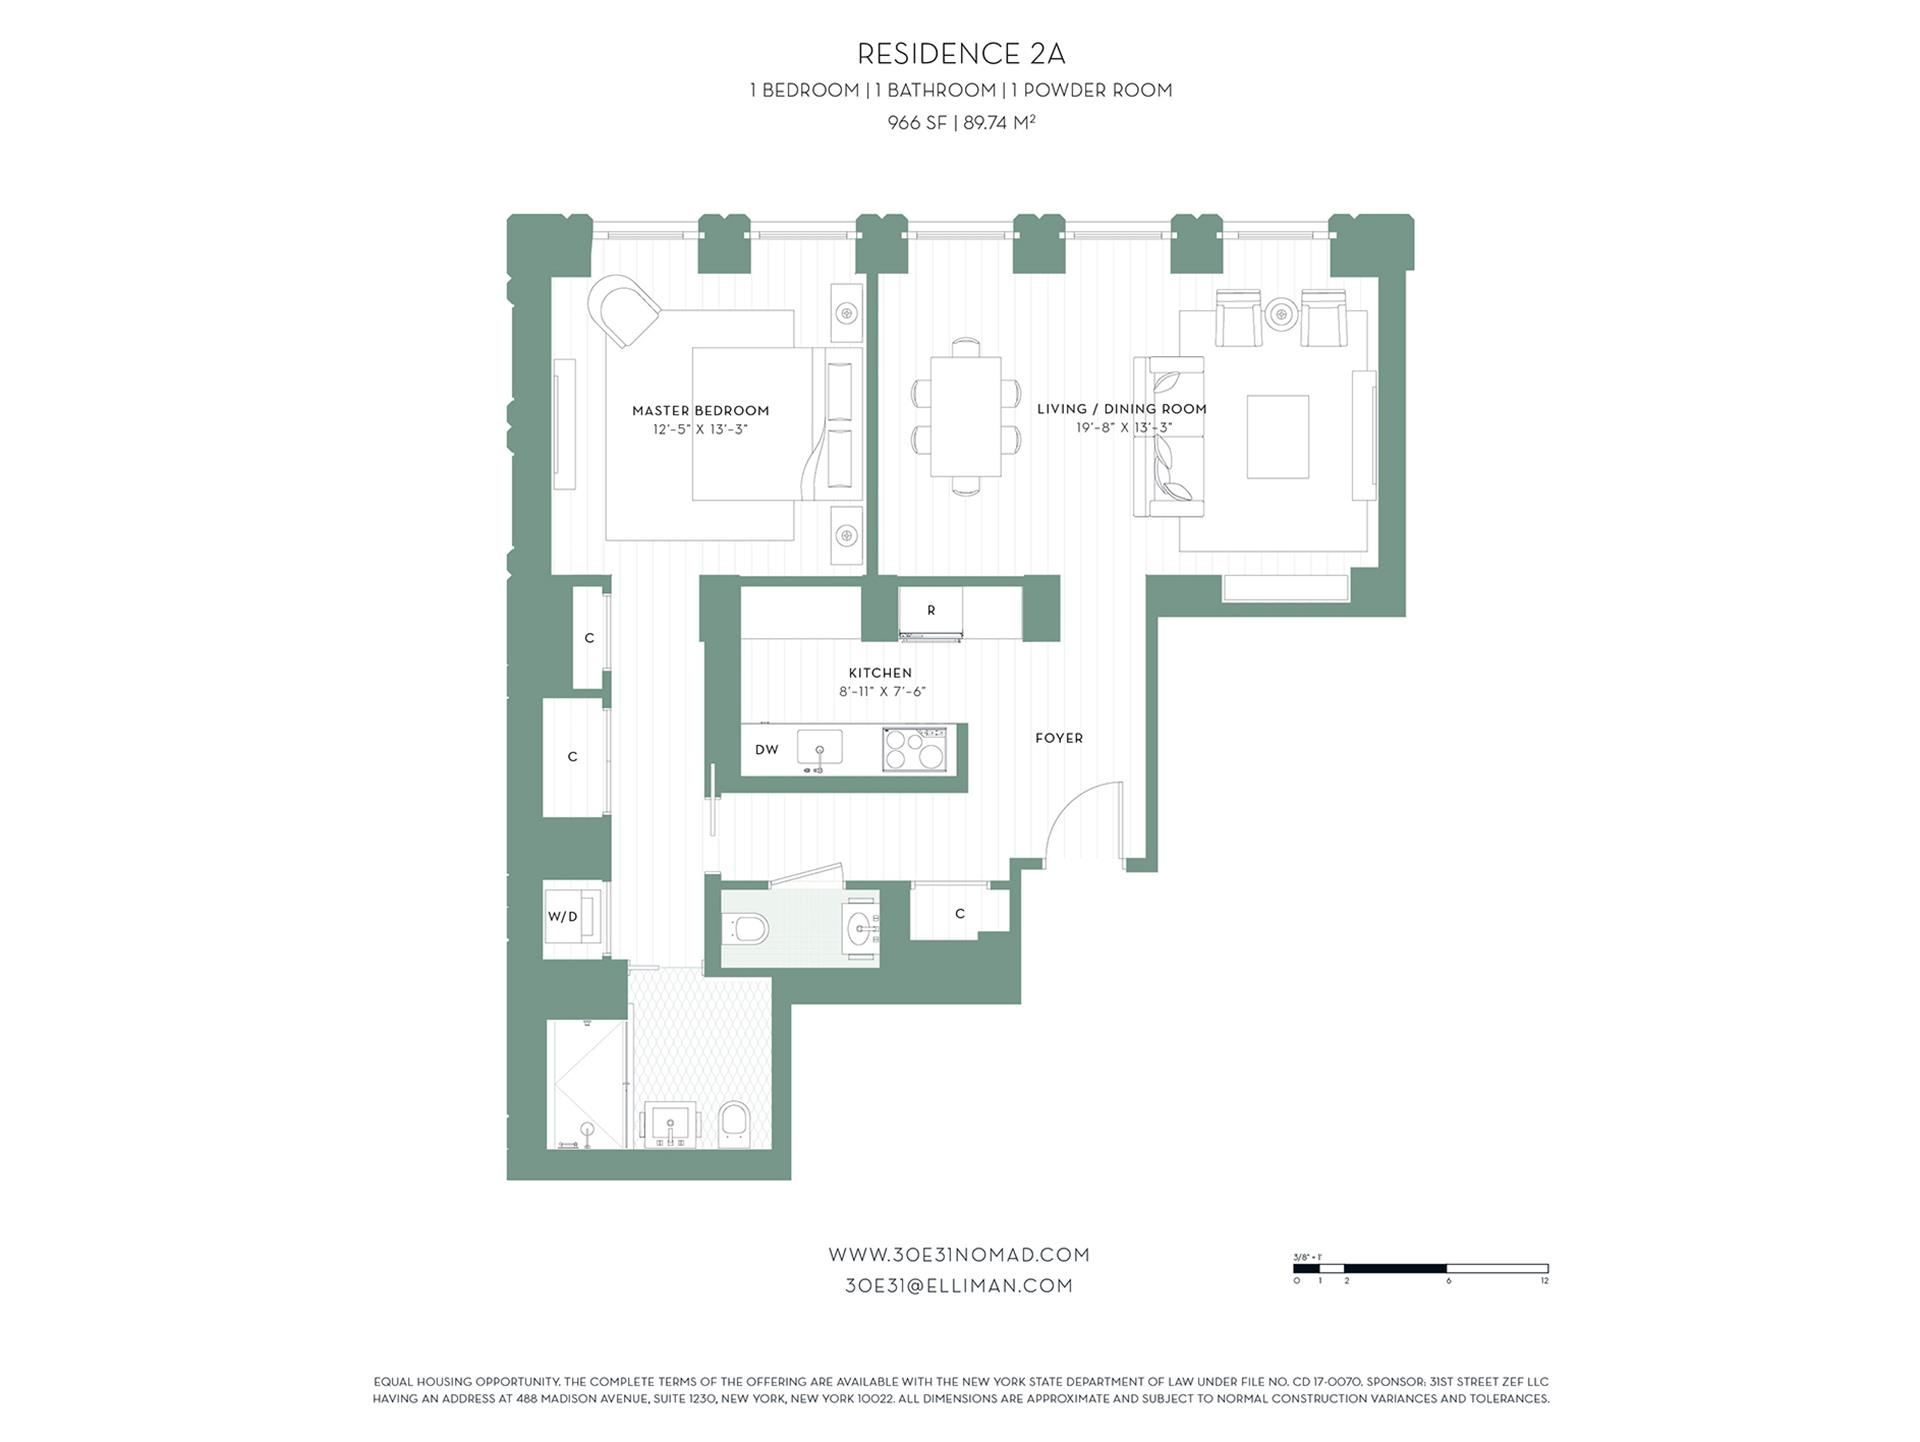 Floor plan of 30 East 31st St, 2A - Midtown, New York